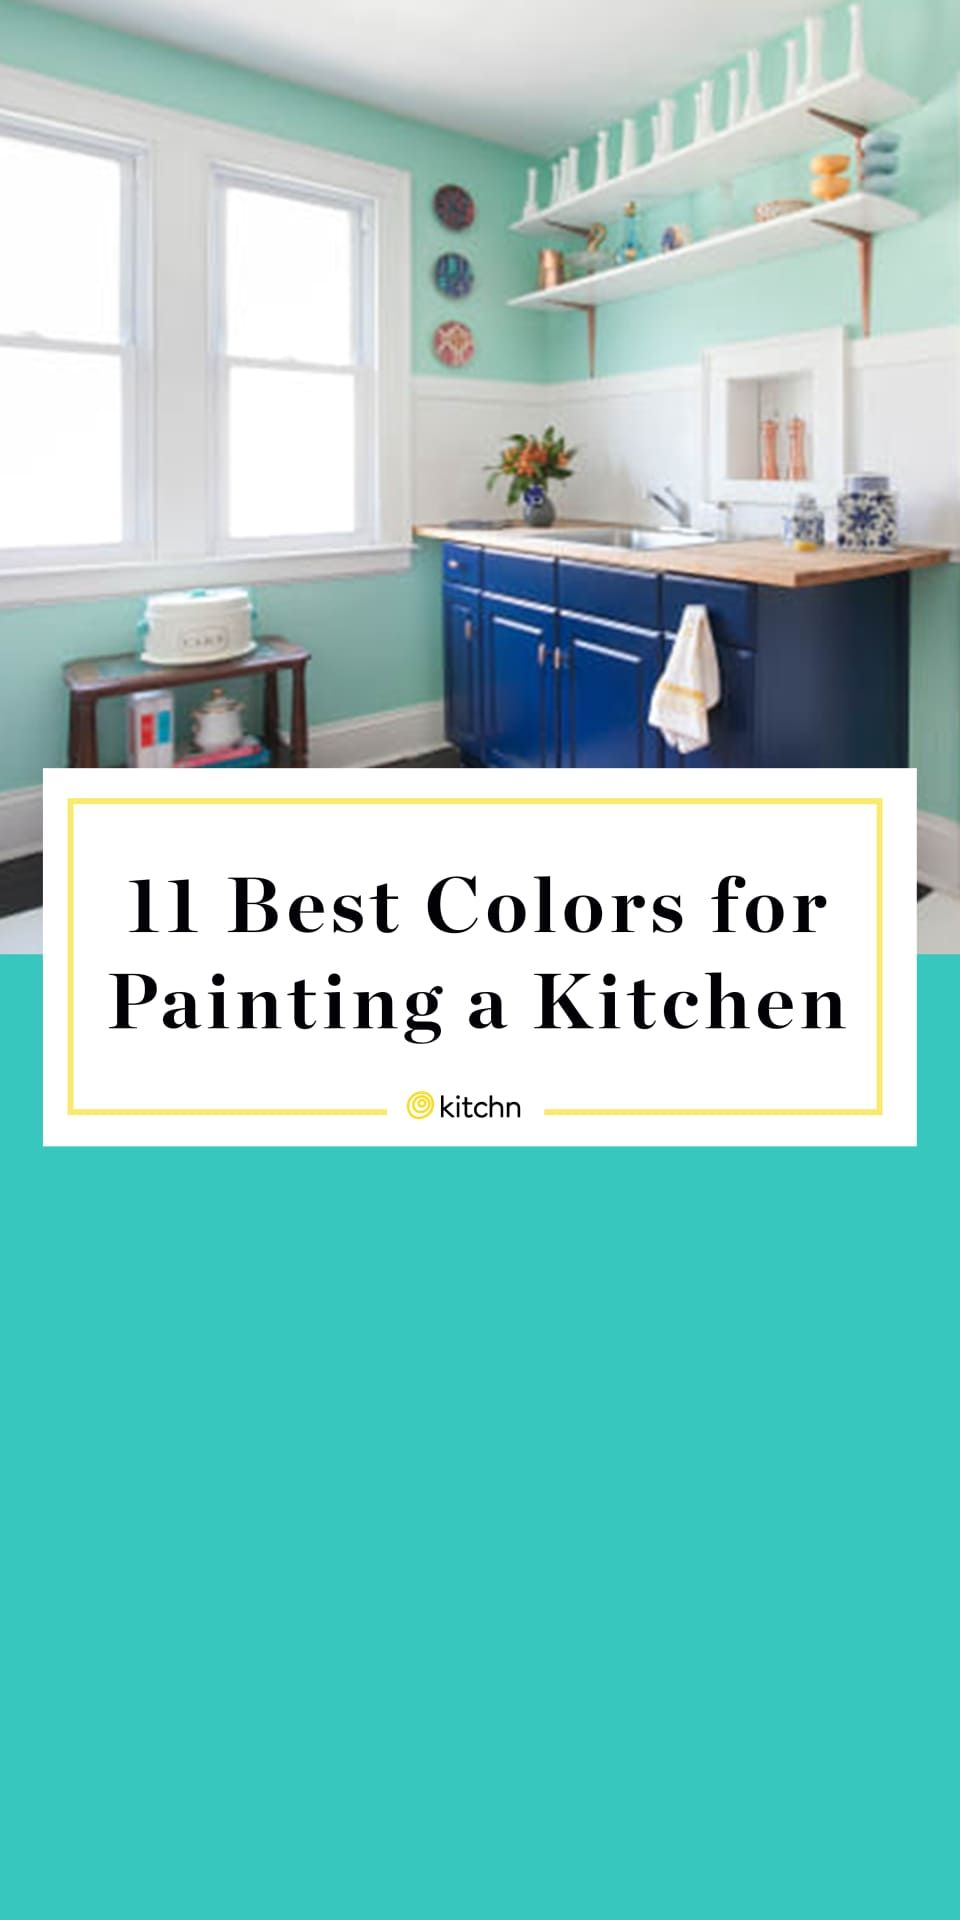 Color Trends Color Of The Year 2021 Aegean Teal 2136 40 Benjamin Moore Kitchen Color Trends Popular Kitchen Colors Bathroom Cabinet Colors